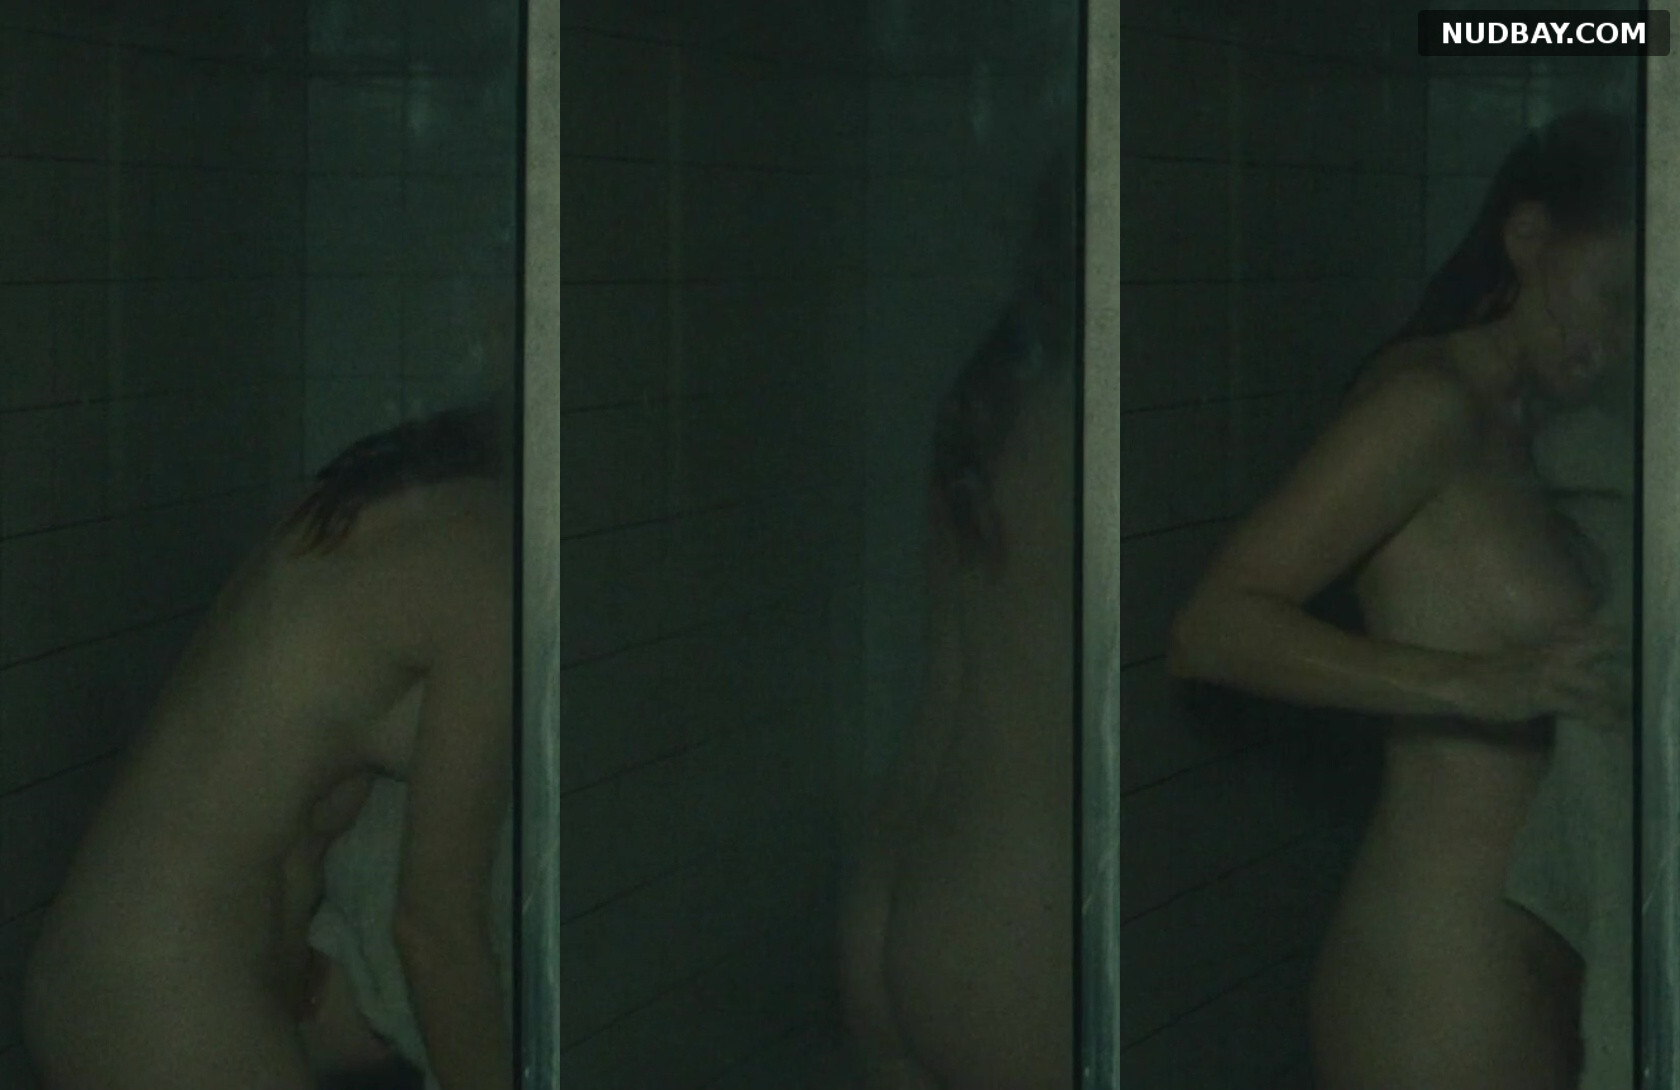 Jessica Chastain Nude in Scenes From a Marriage S01E02 (2021)